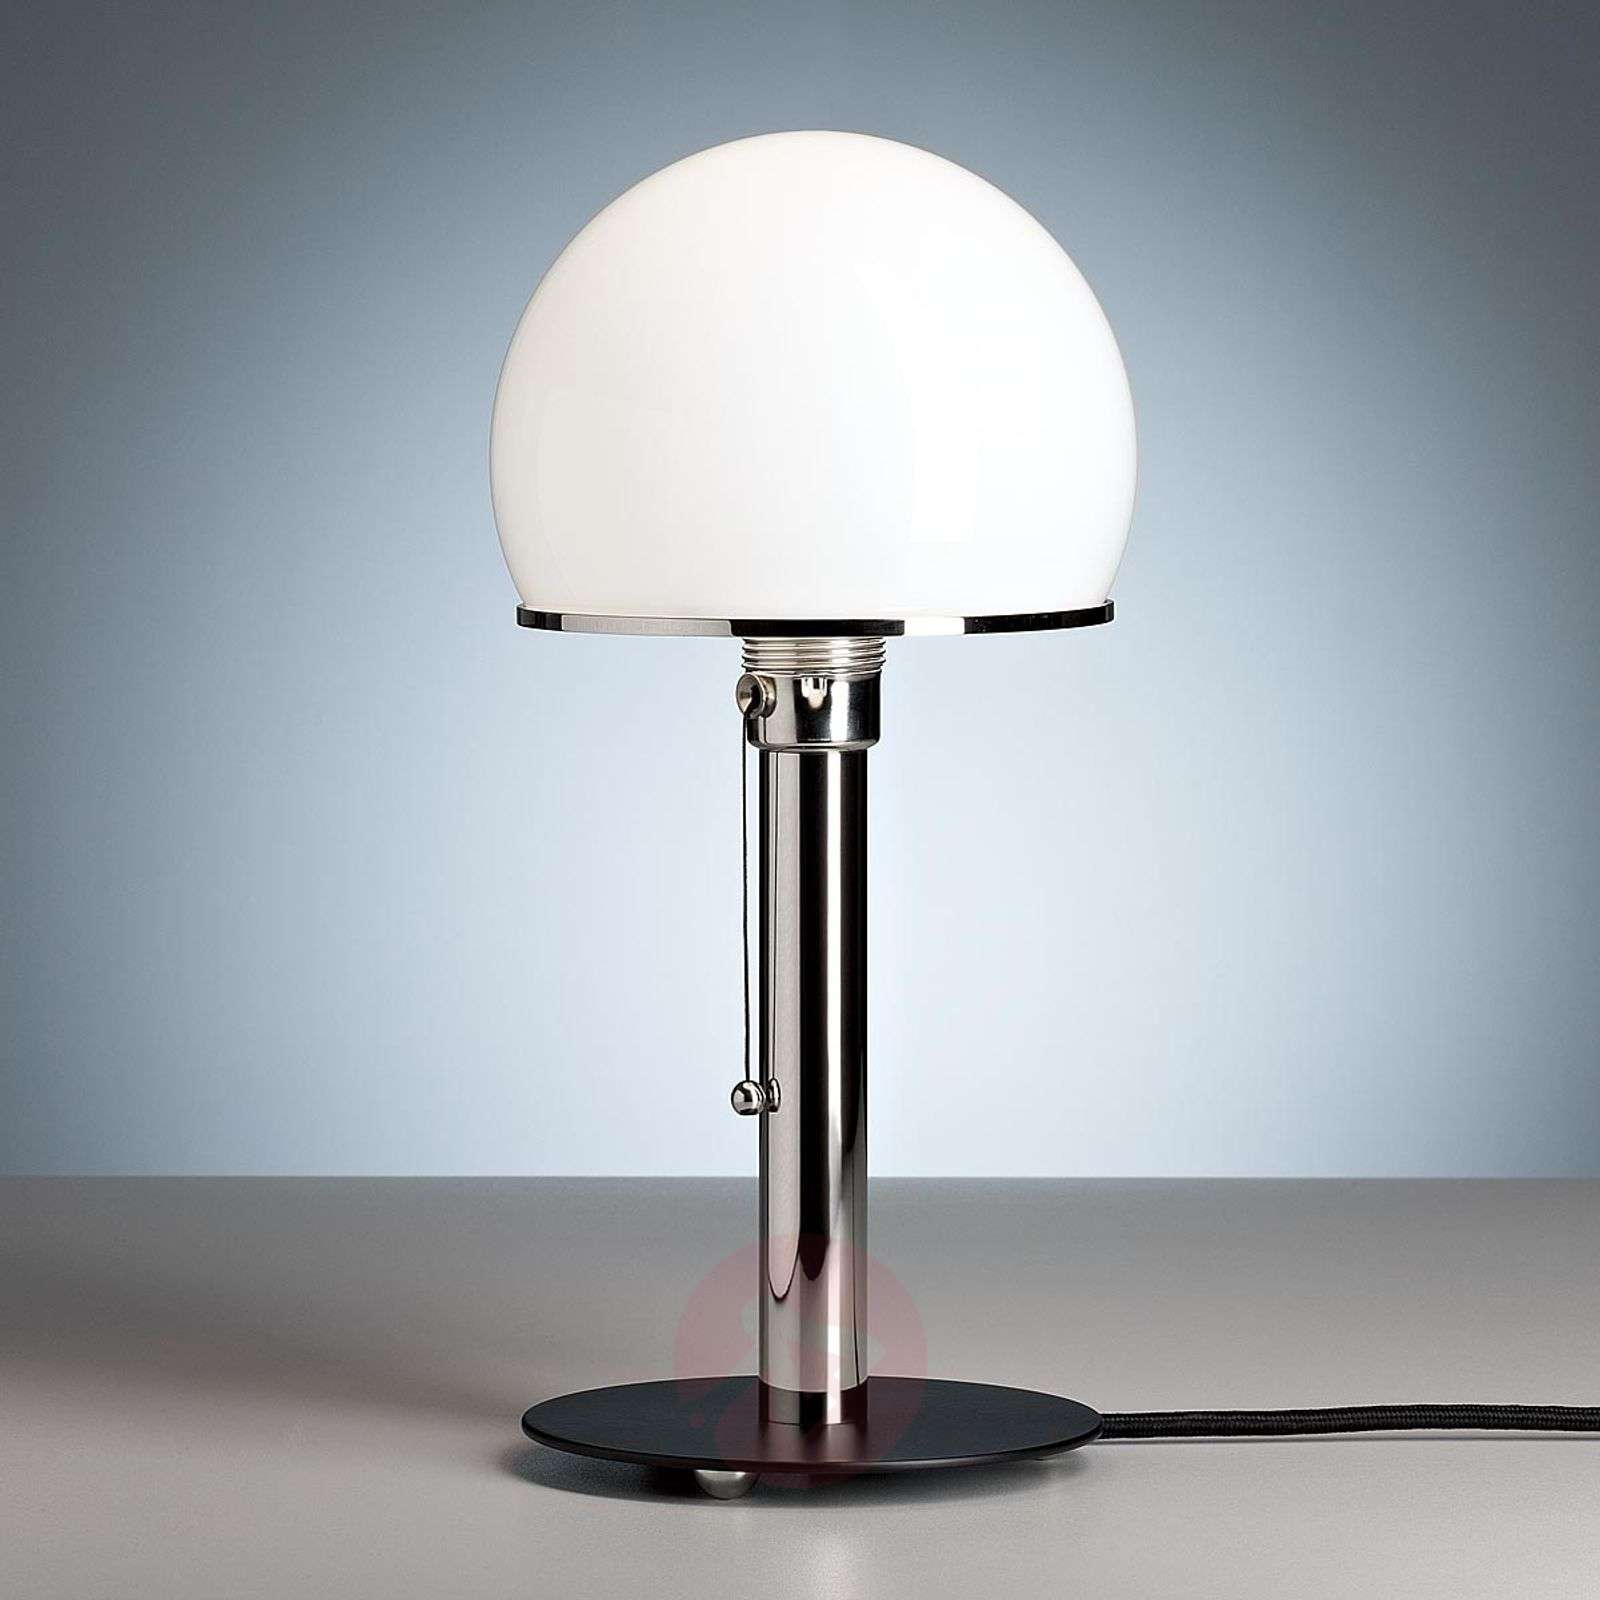 Wagenfeld table lamp with a black painted base-9030002-01